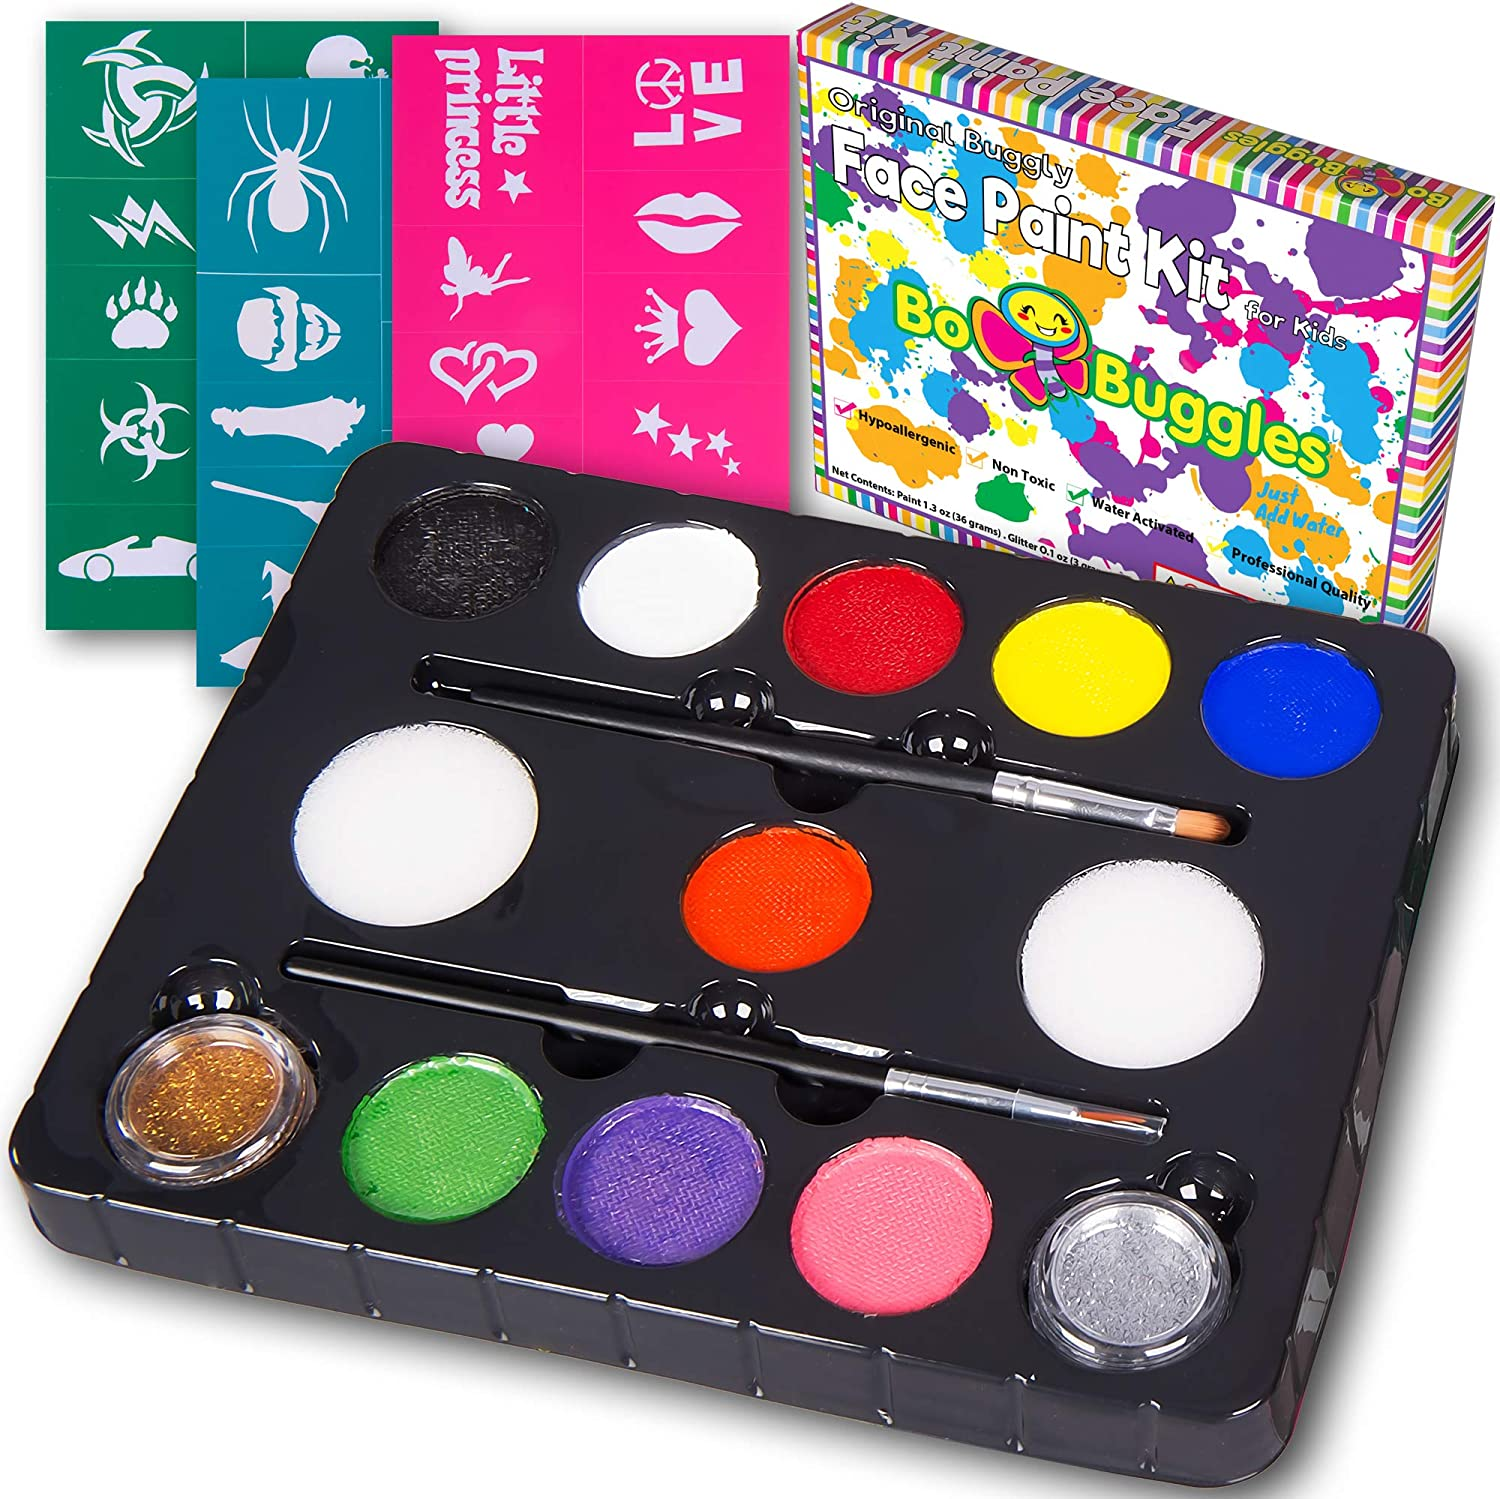 Top 9 Best Face Painting Kits (2020 Reviews & Buying Guide) 4